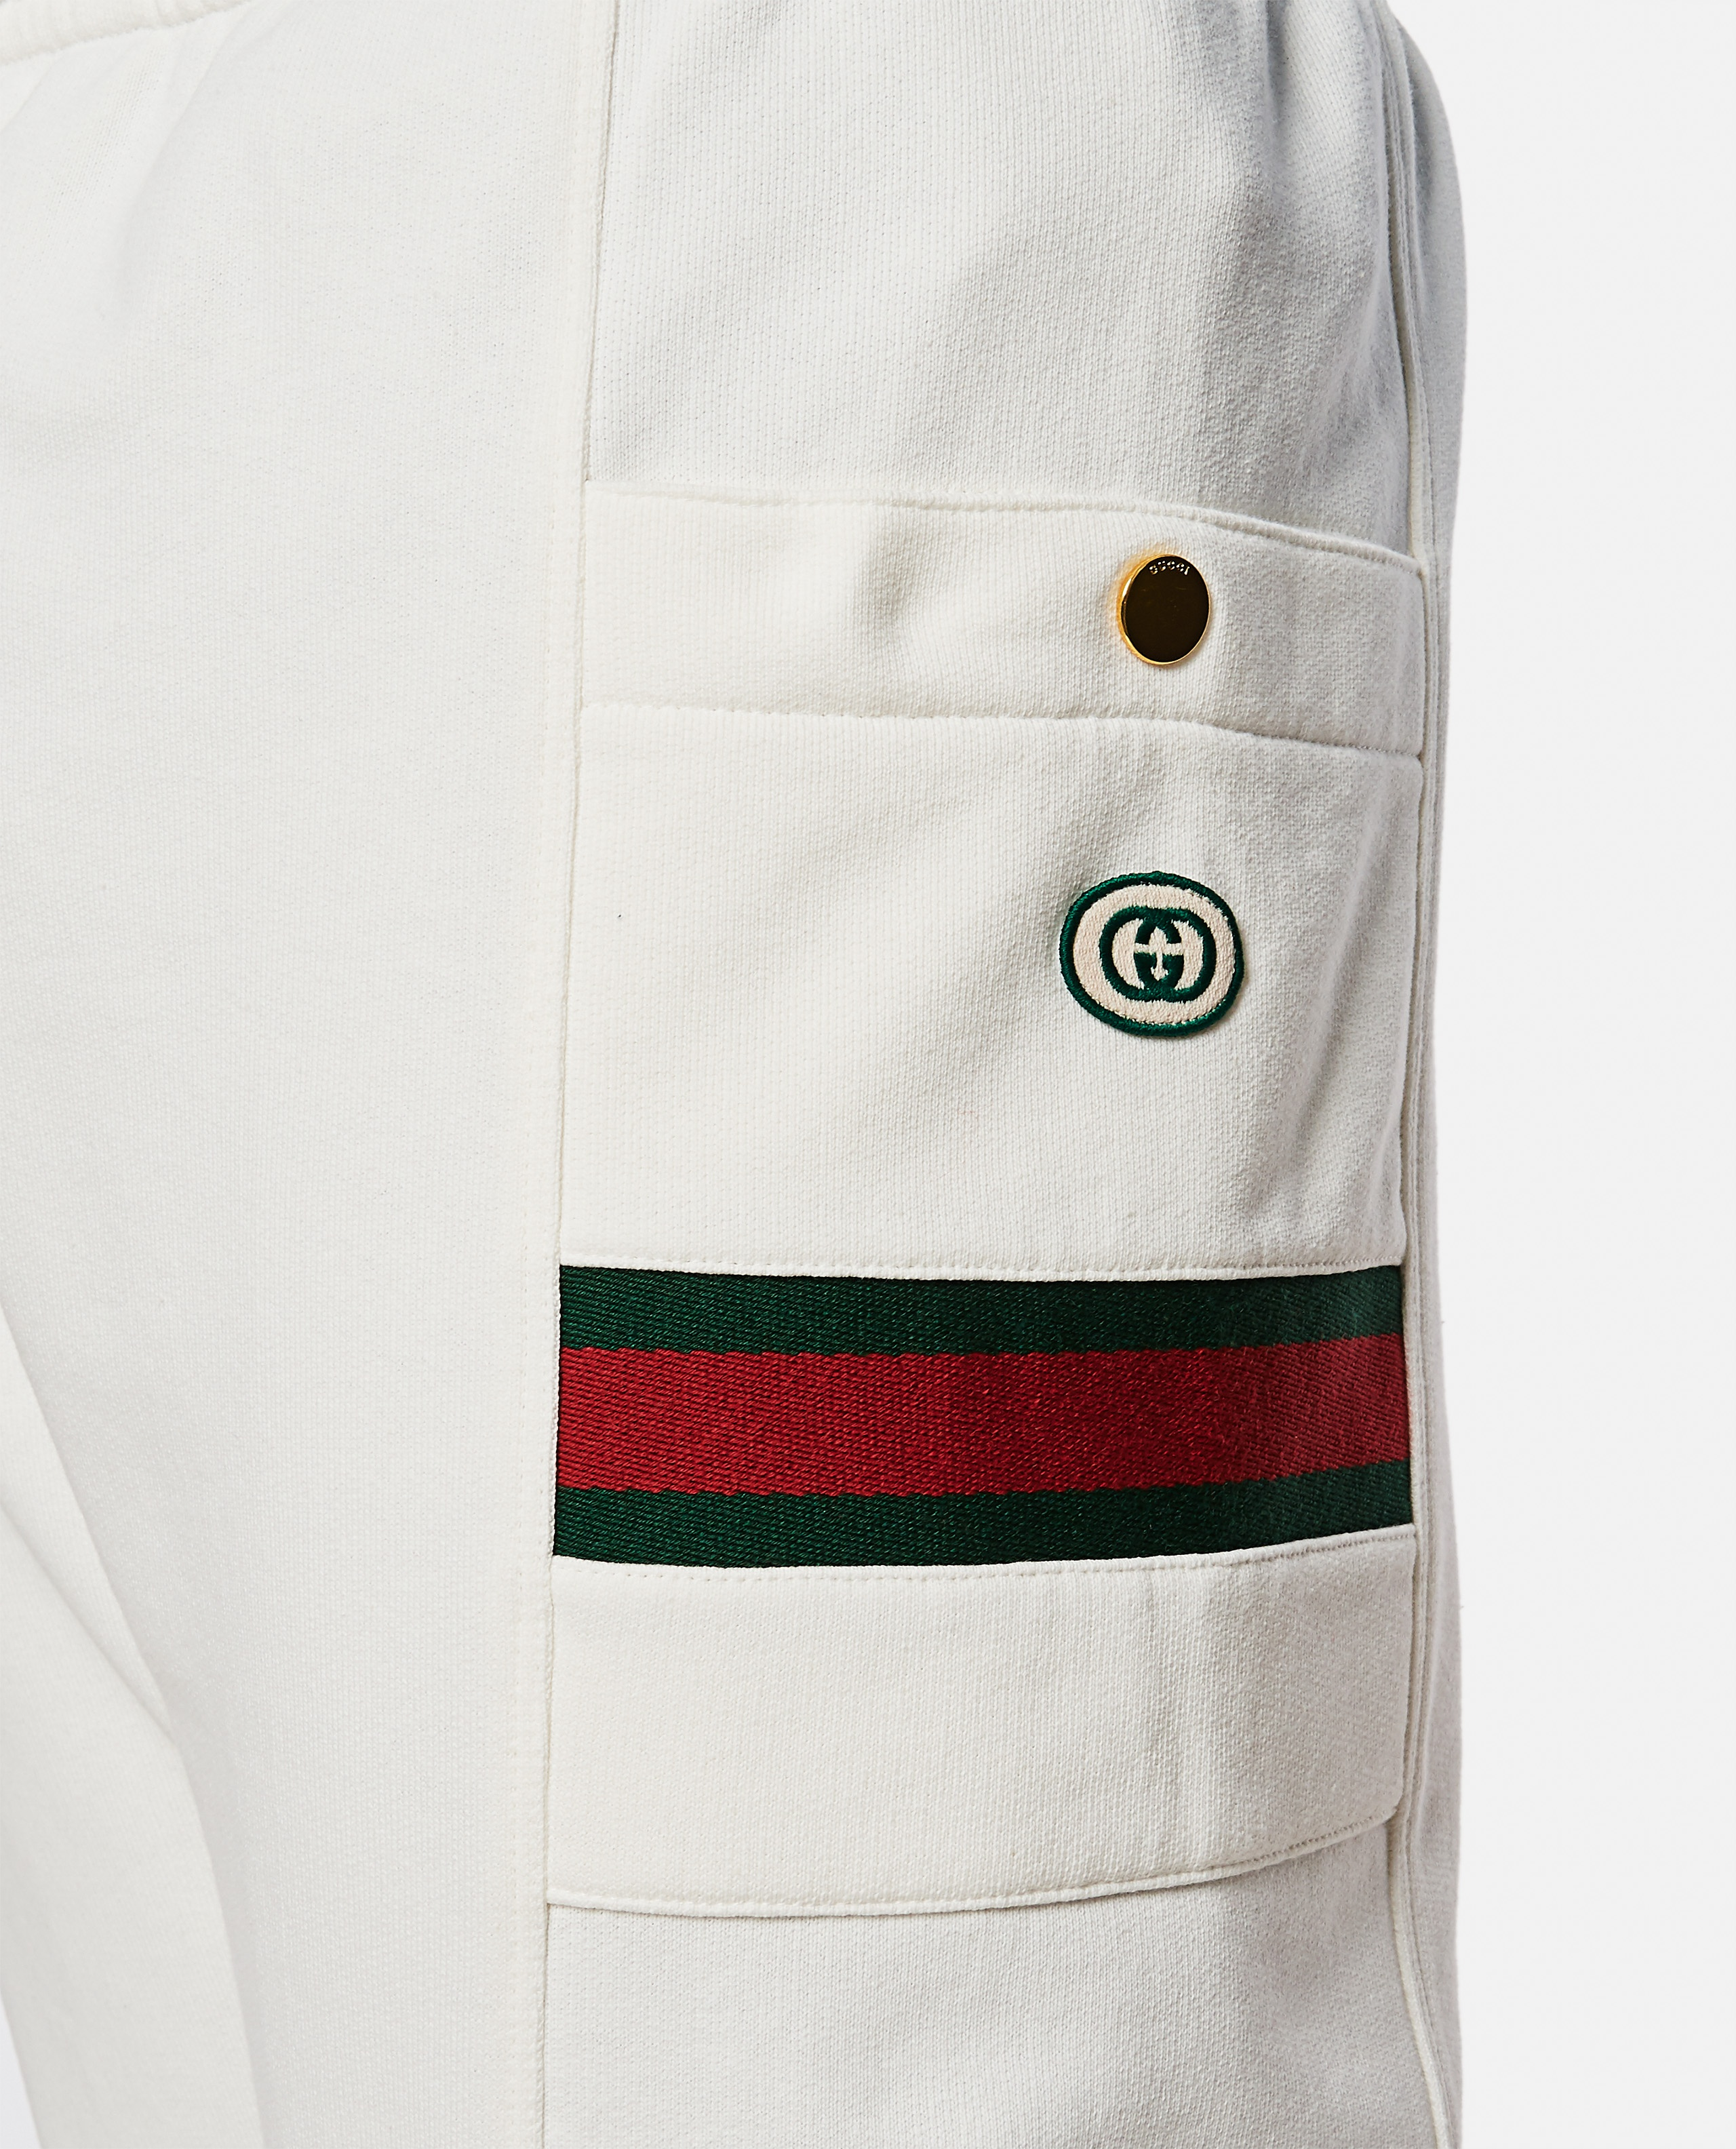 Jersey jogging trousers with Web ribbon Men Gucci 000267660039487 4